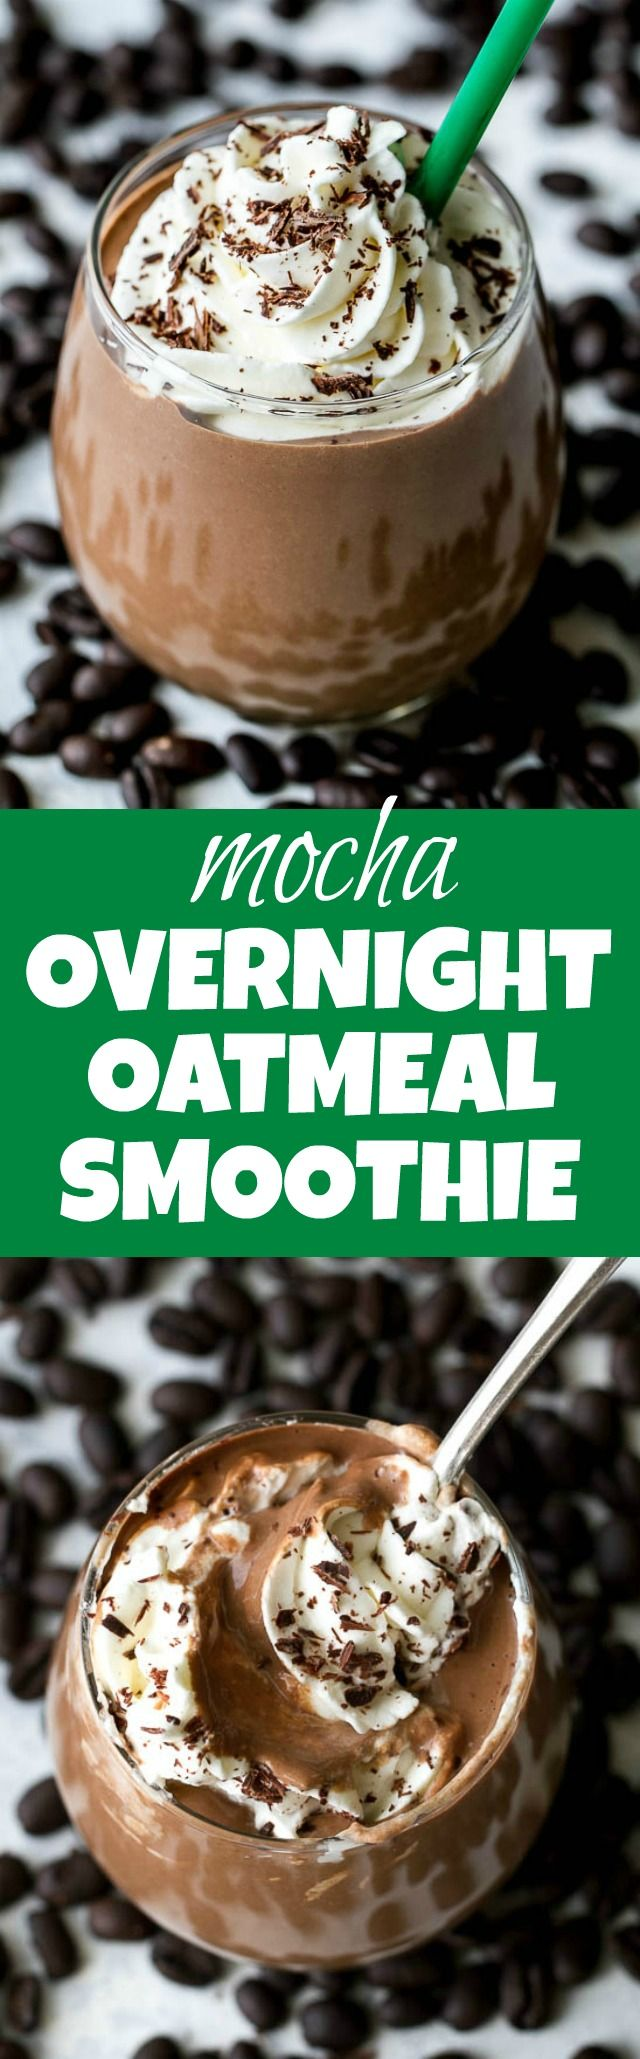 Mocha Overnight Oatmeal Smoothie - the stick-to-your-ribs feeling of a bowl of oats in a thick and creamy smoothie that's guaranteed to keep you satisfied for hours! Vegan, gluten-free, and packed with plant-based protein and fiber, this smoothie is perfect for both coffee and chocolate lovers! | runningwithspoons.com